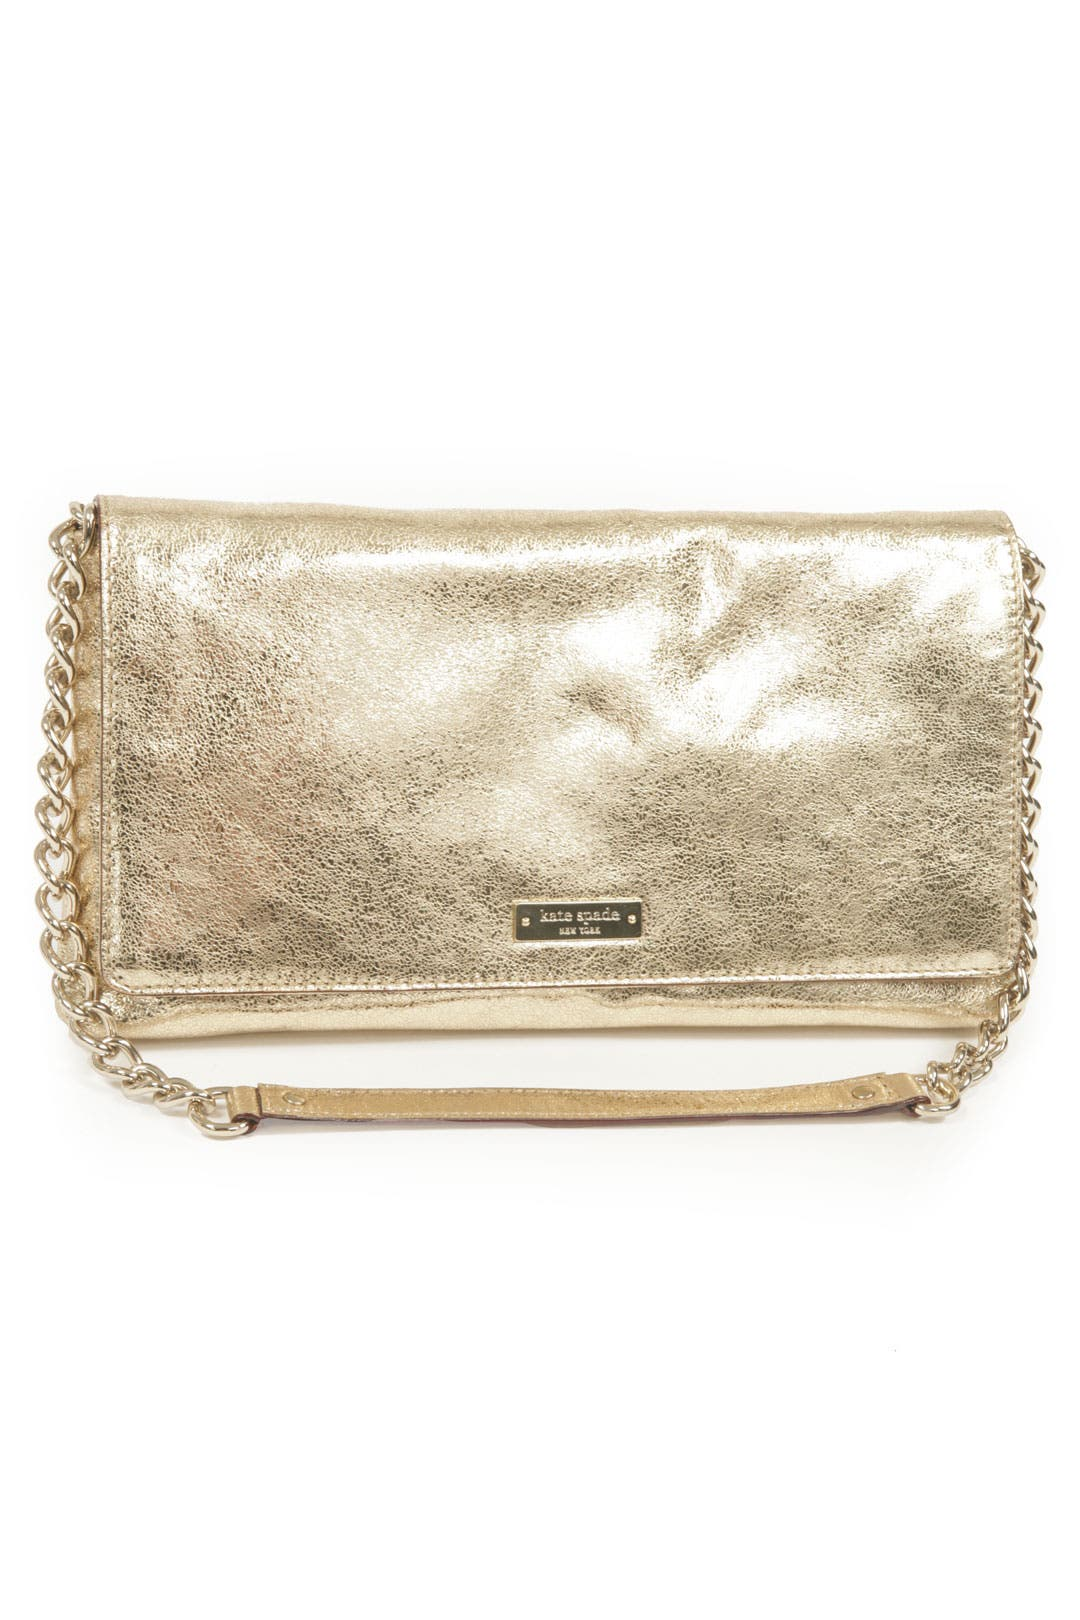 Flicker Gold Monette Clutch by kate spade new york accessories